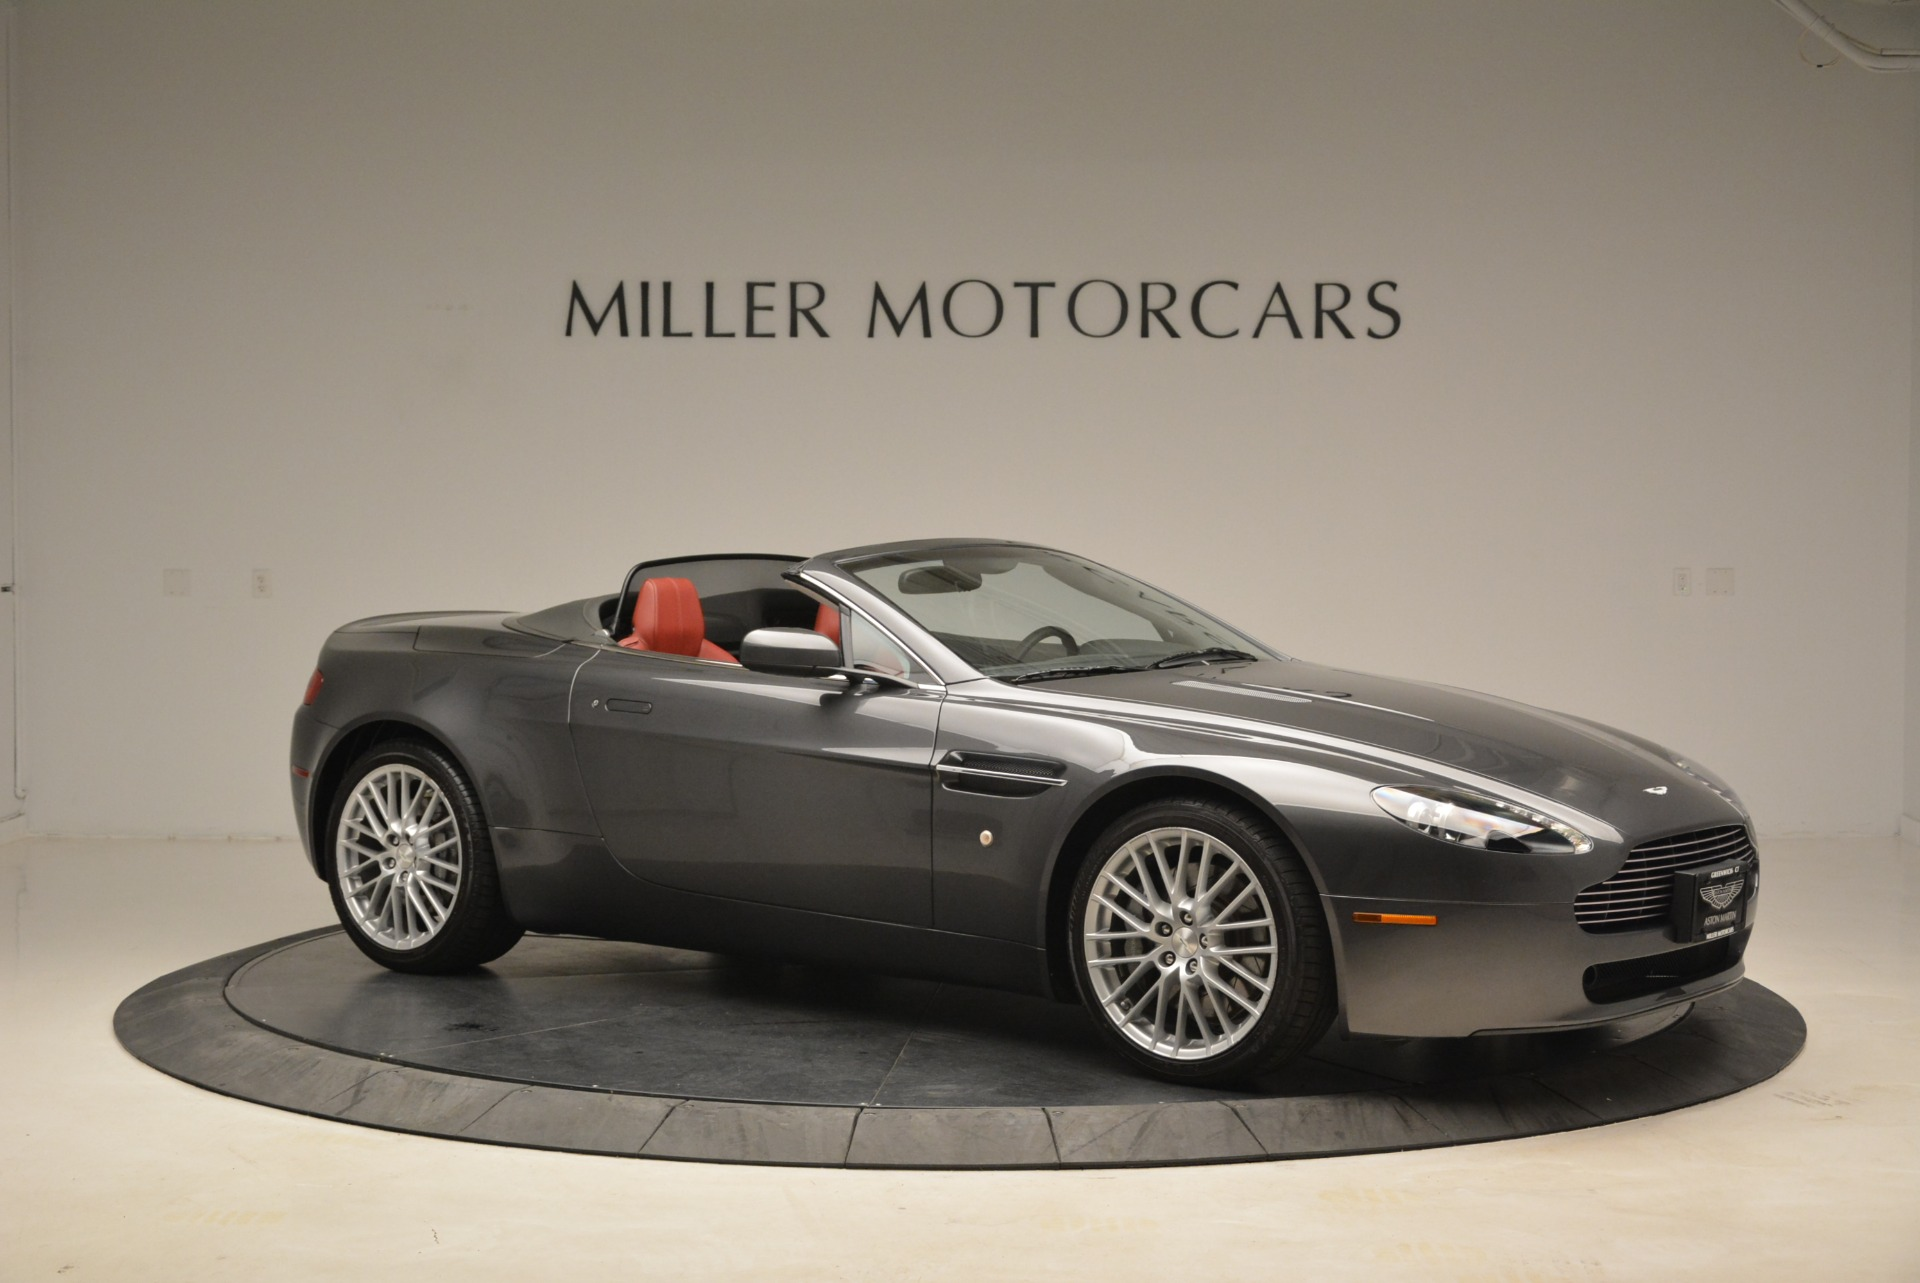 Used 2009 Aston Martin V8 Vantage Roadster For Sale In Greenwich, CT 2123_p10